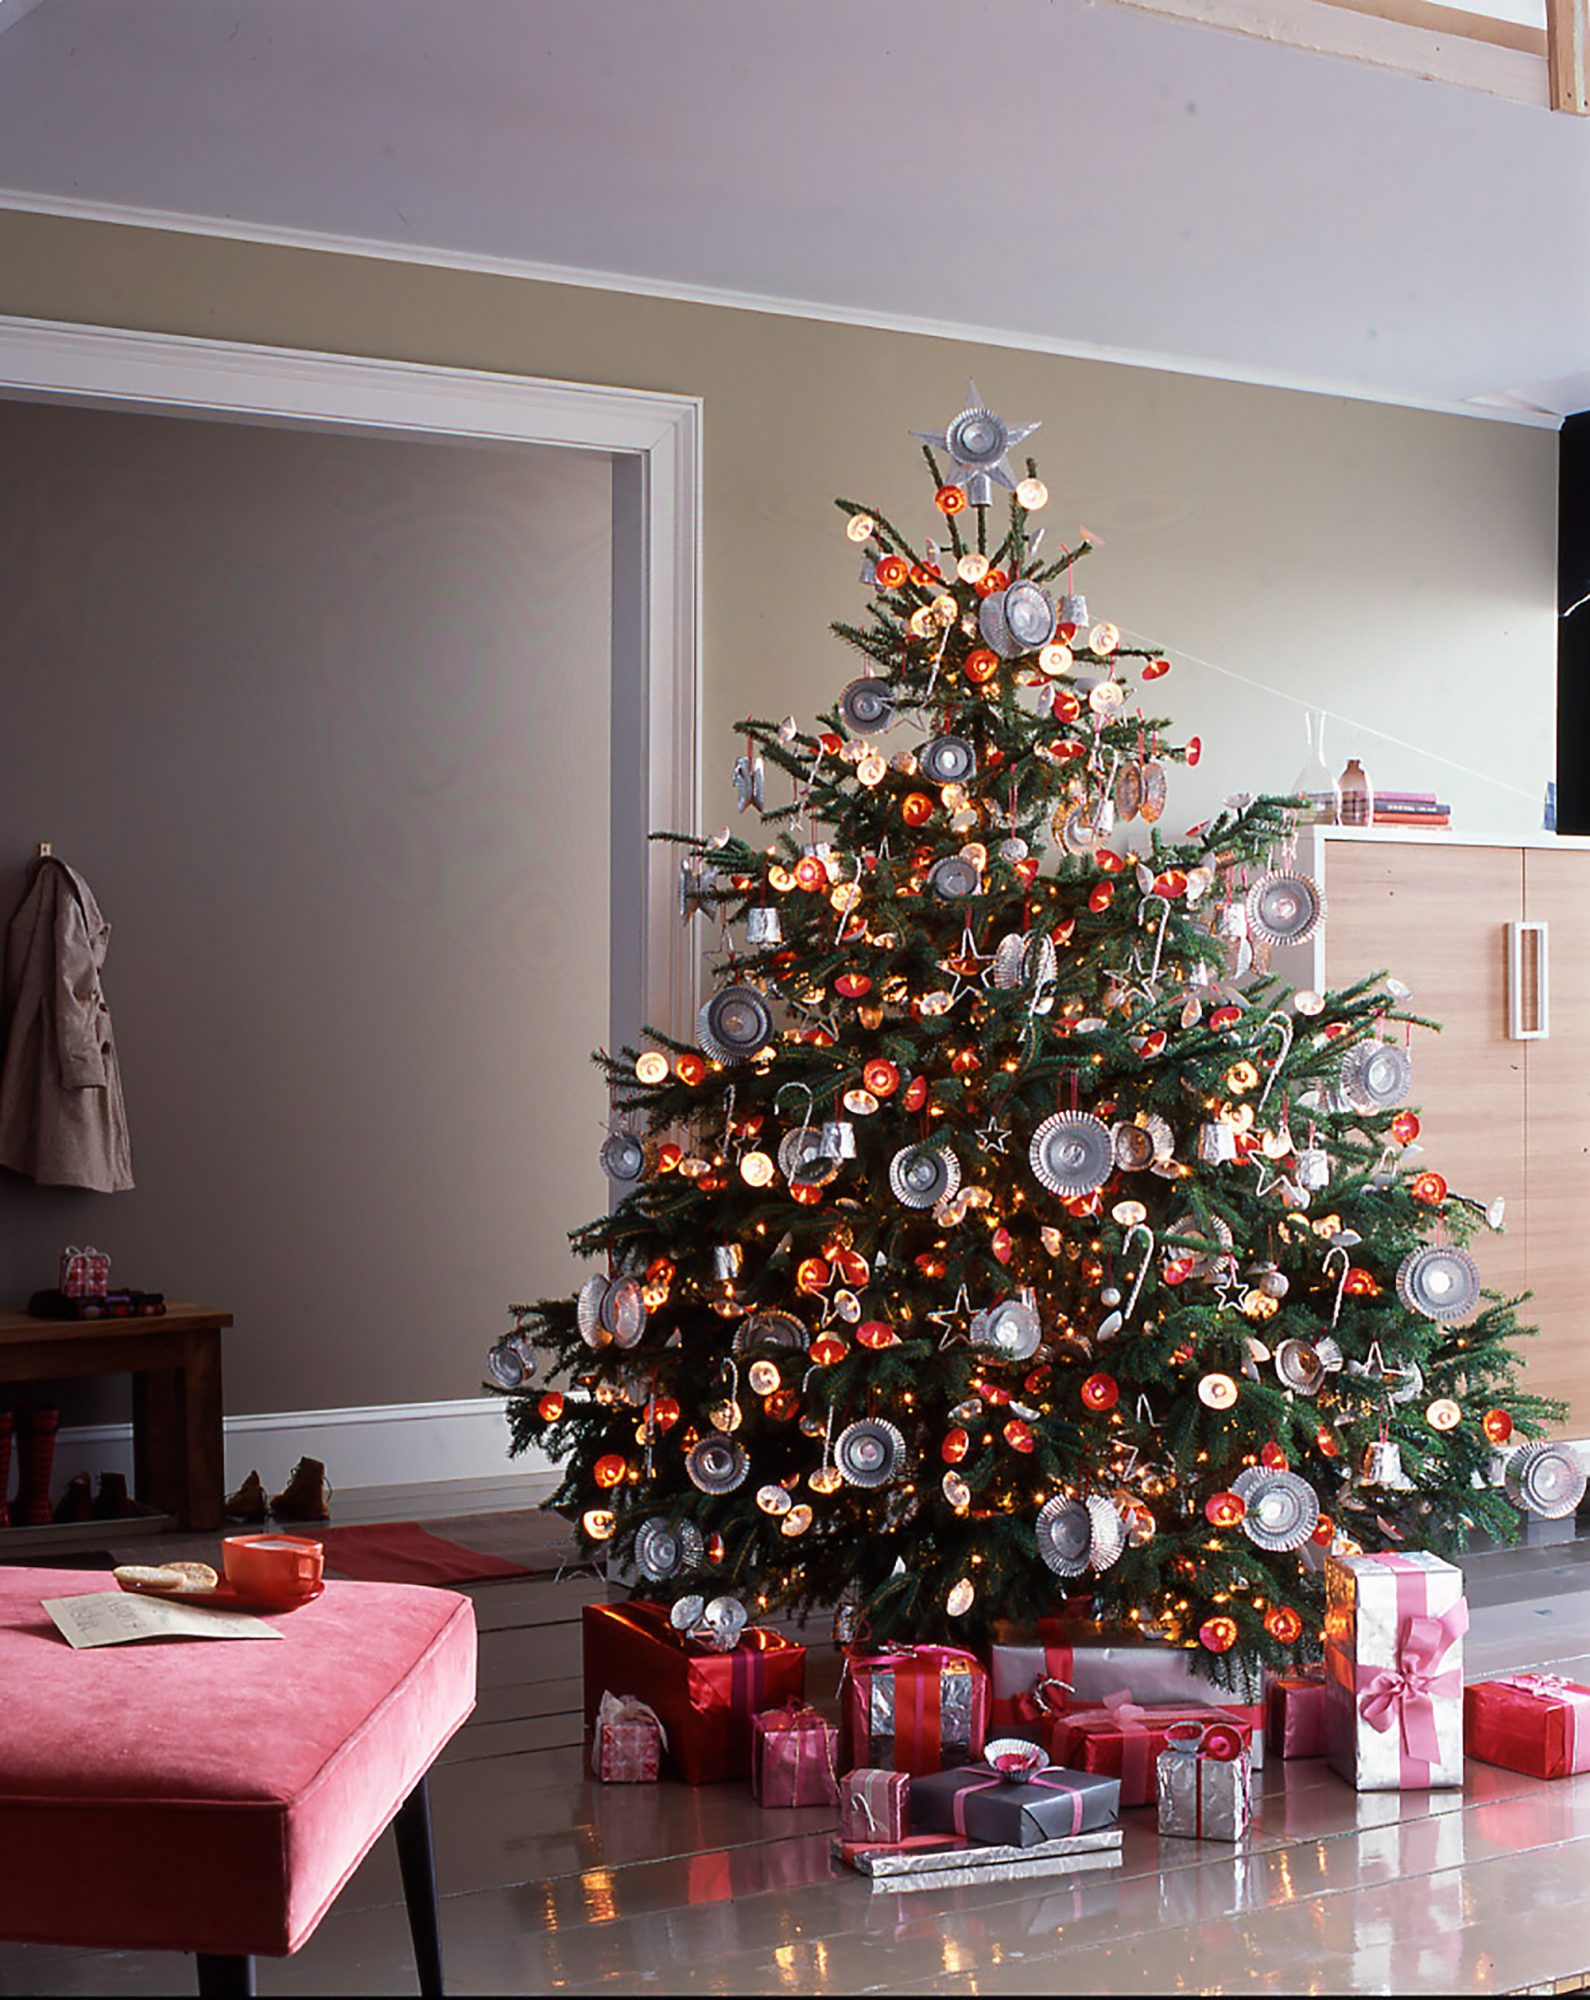 This tree gets its shimmer from aluminum foil. Sheets of foil are twisted and scrunched into stars, balls, and canes, all hung with yarn. Turn cupcake liners inside out; stack, and then glue back-to-back; tie on yarn to hang. Poke string lights through small liners for a radiant glow. More liners decorate a foil-covered cardboard star (with a toilet-paper tube back). A silver mouse sits atop shining gifts.Shop Now: GE String-a-Long Miniature Lights, $7, michaels.com. Celebrate It Standard Foil Baking Cups in Gold and Silver, $2 each, michaels.com.